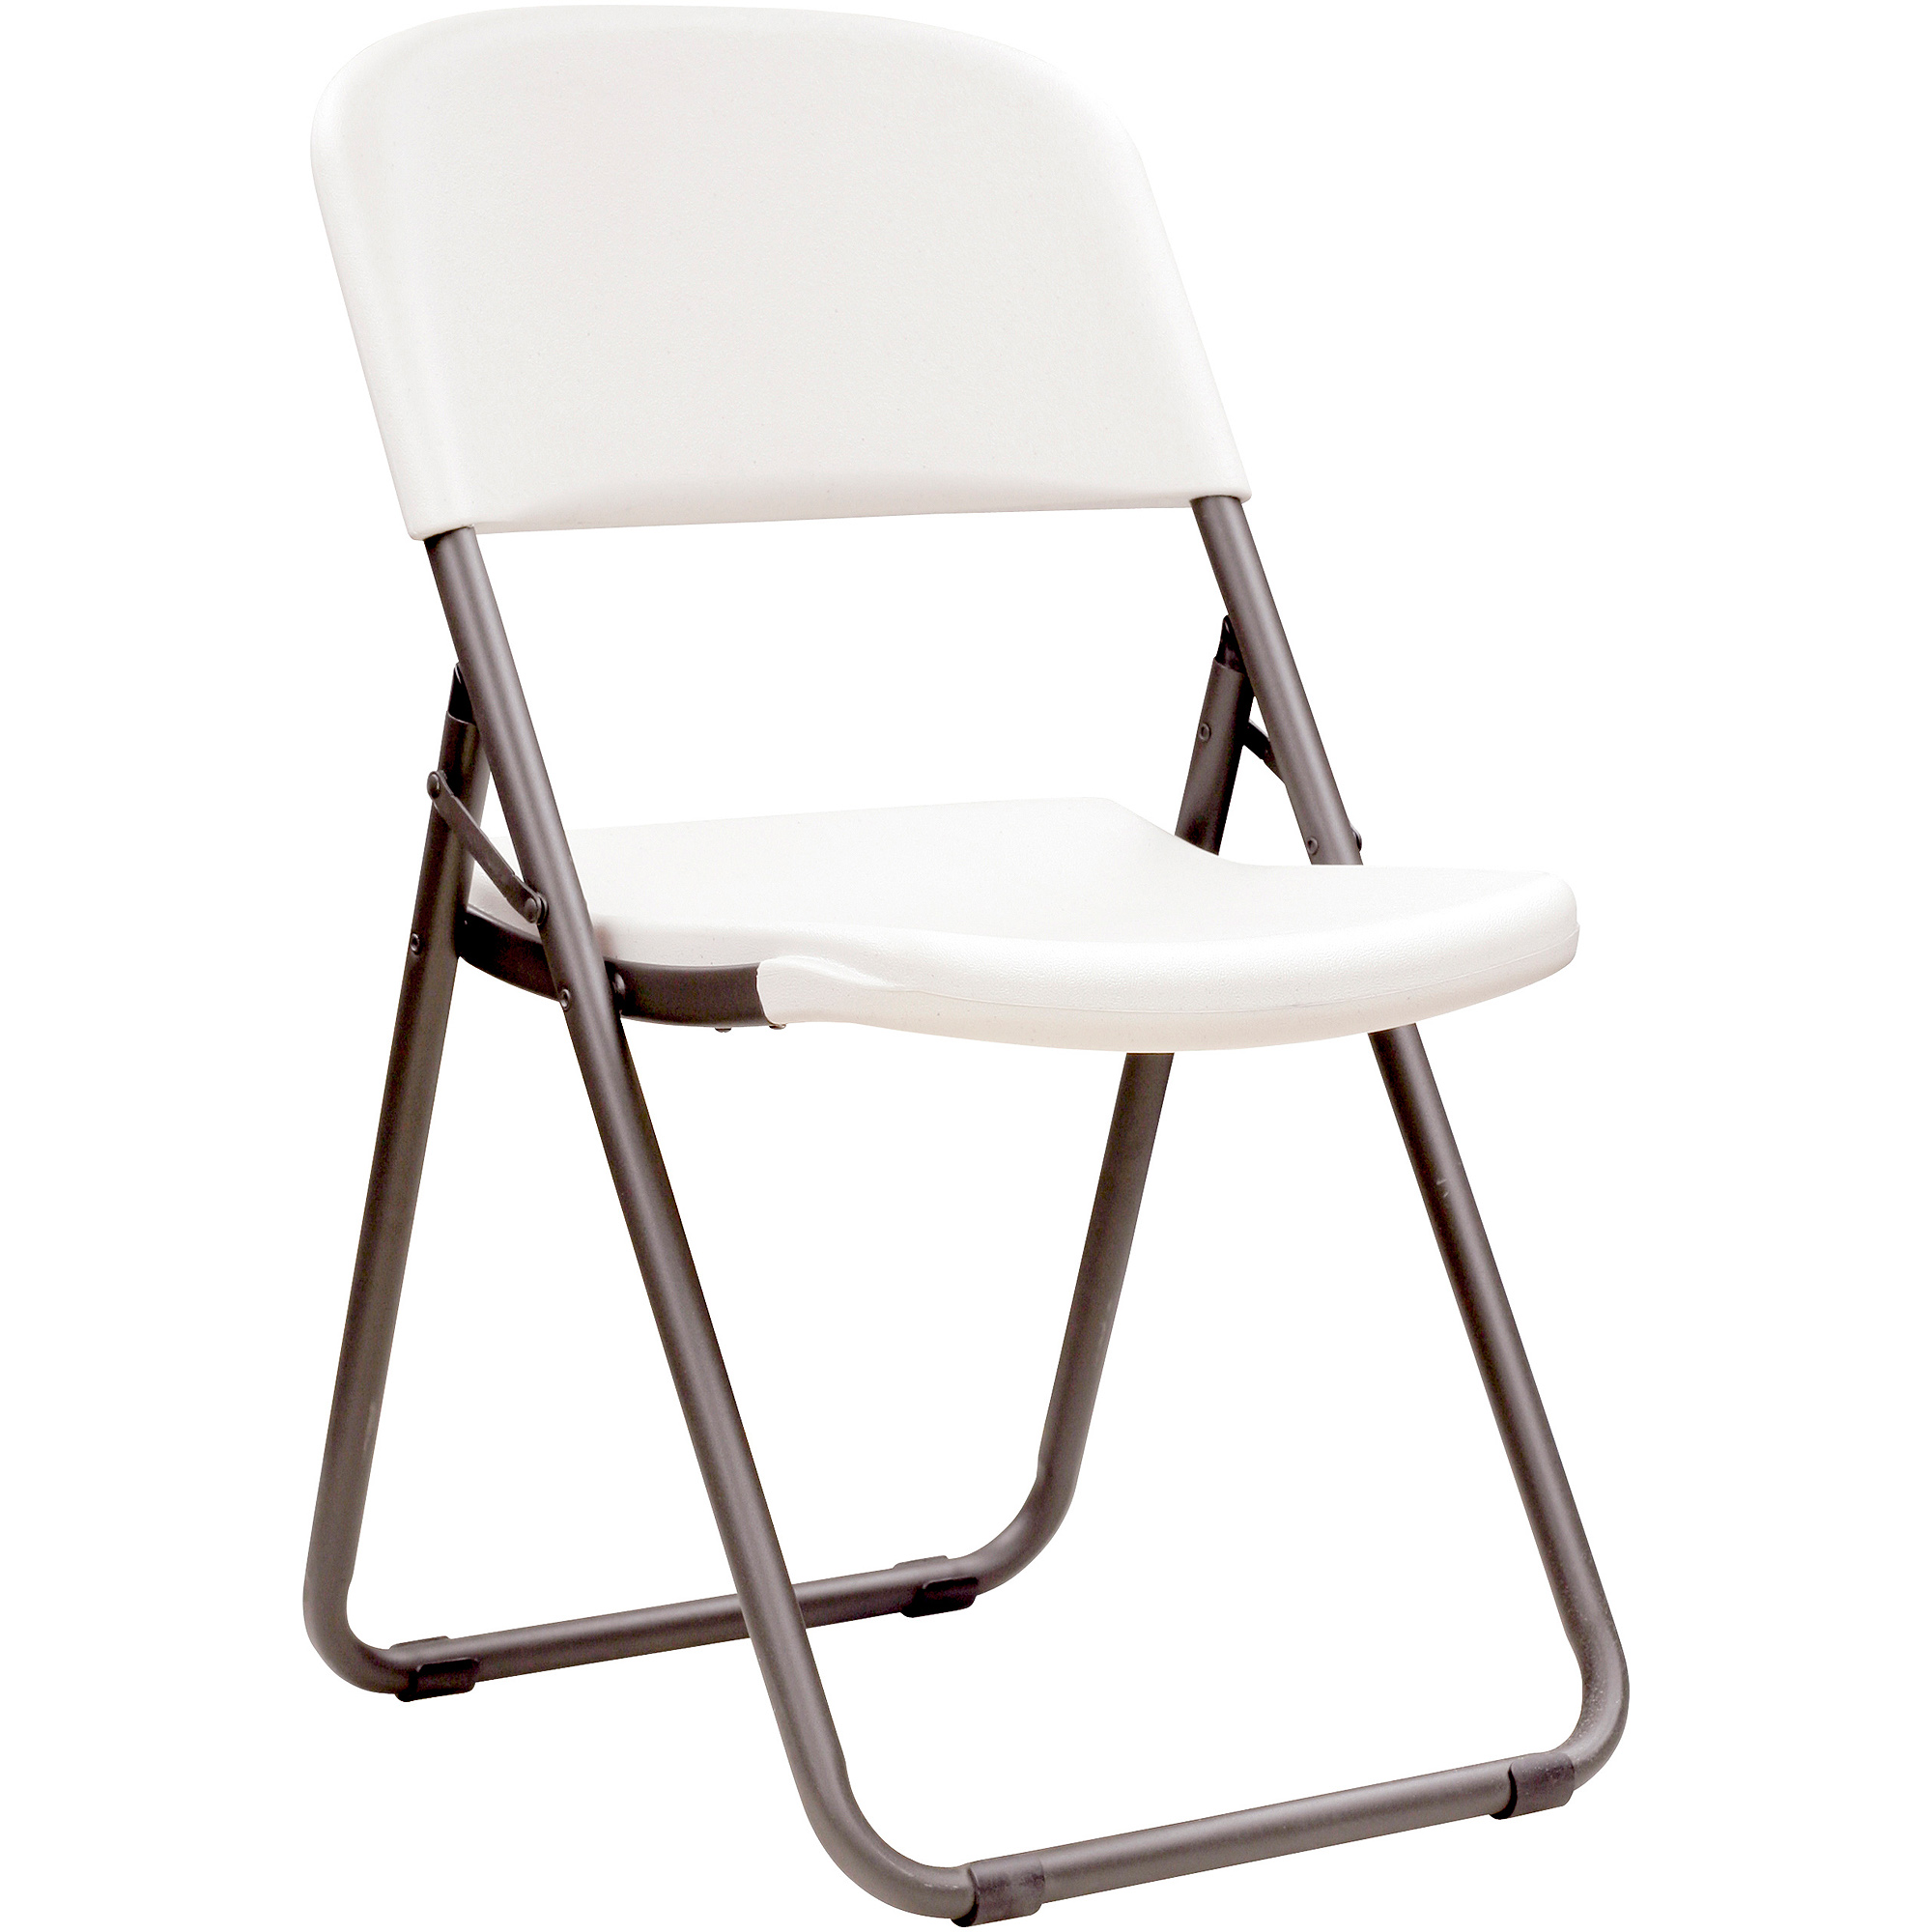 Lifetime Loop Leg Folding Chair, Set of 4, White Granite - Walmart.com